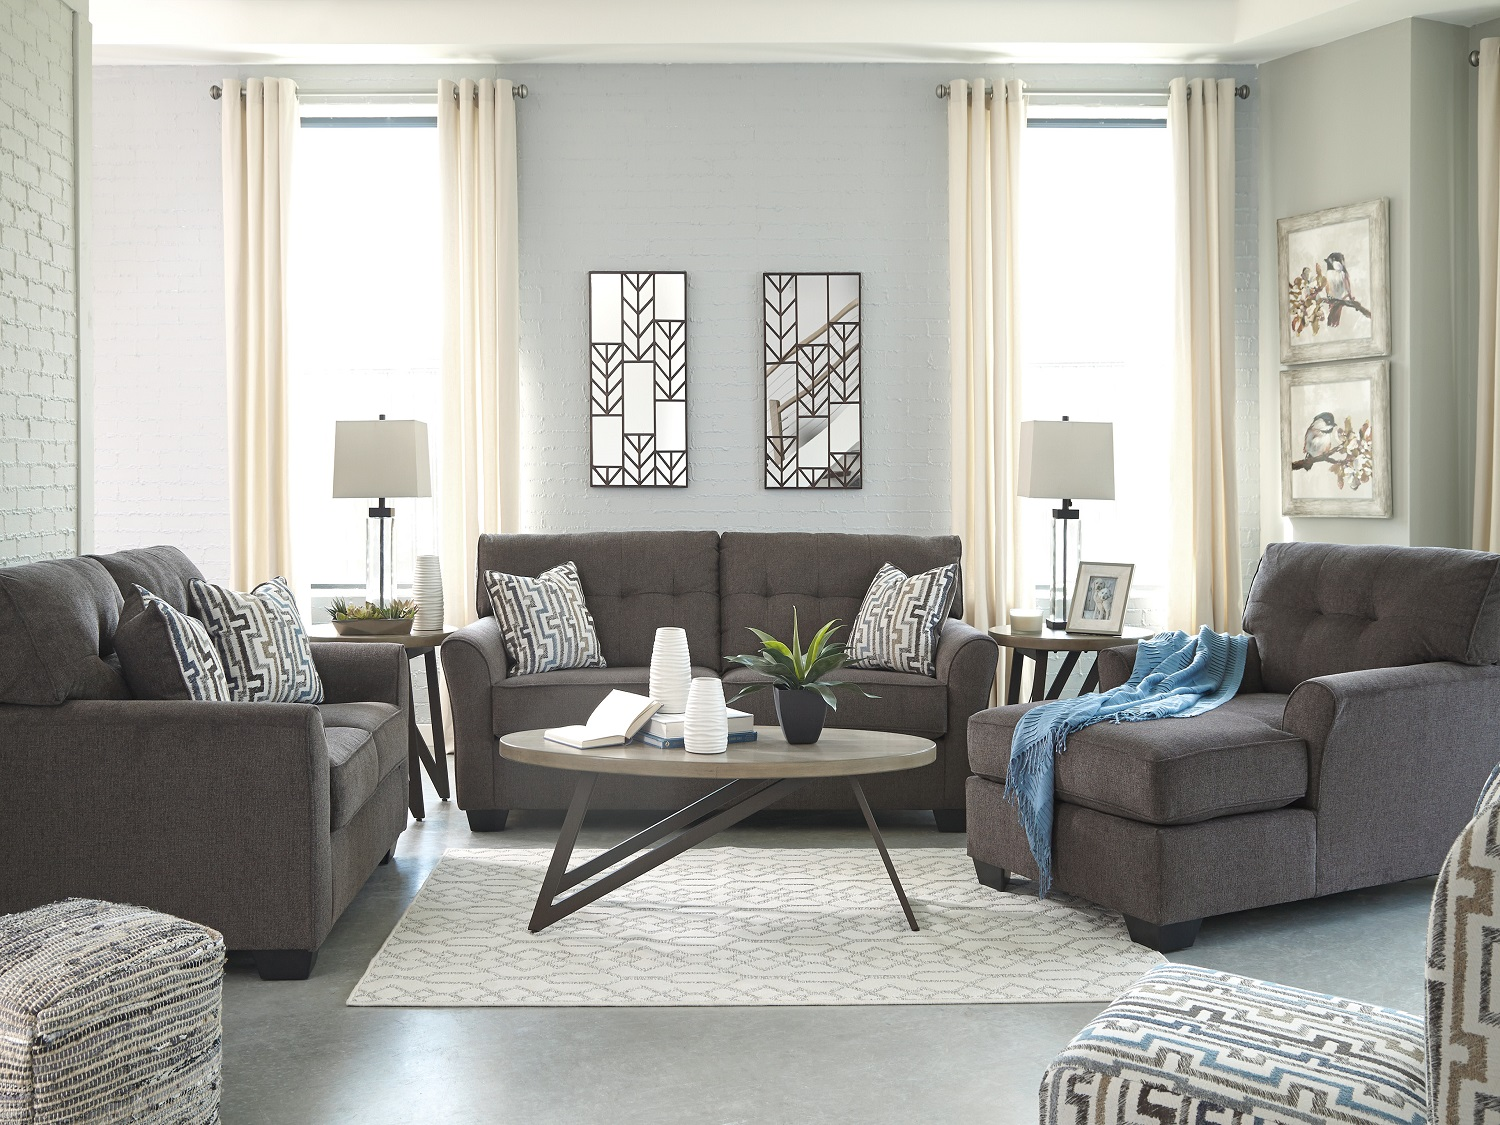 Alsen, 739, Sofa Sets by Midha Furniture to Brampton, Mississauga, Etobicoke, Toronto, Scraborough, Caledon, Oakville, Markham, Ajax, Pickering, Oshawa, Richmondhill, Kitchener, Hamilton and GTA area